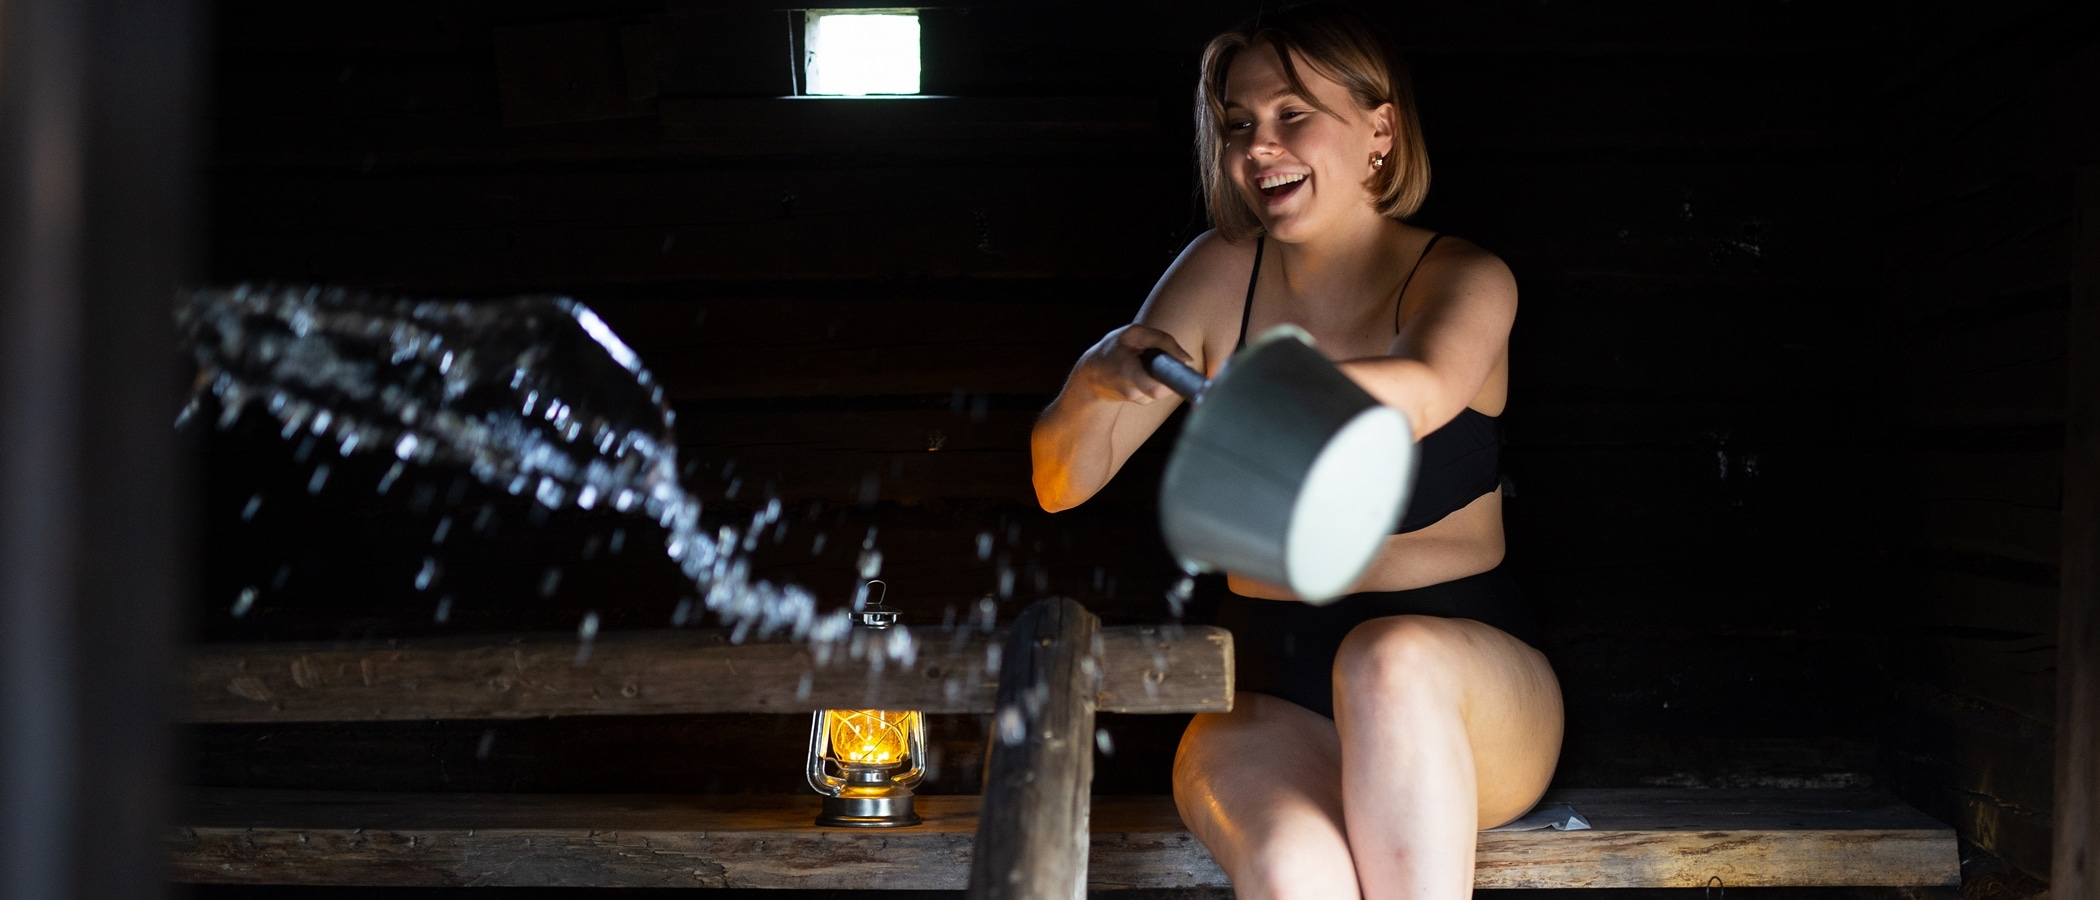 Person bathing in a sauna